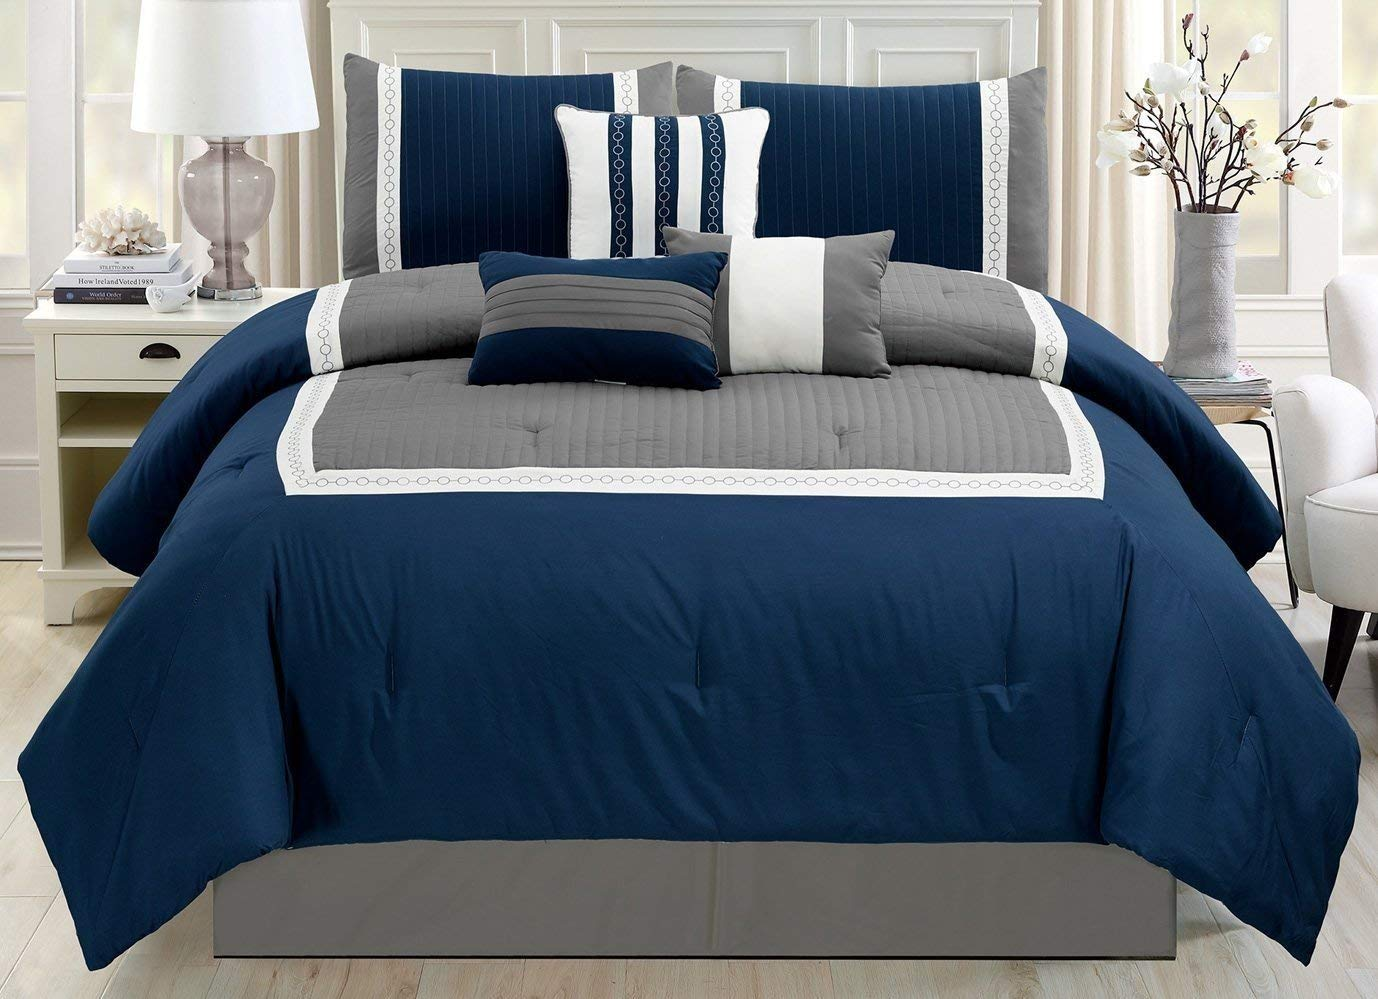 Cheap Double Bed Comforter Set Find Double Bed Comforter Set Deals On Line At Alibaba Com